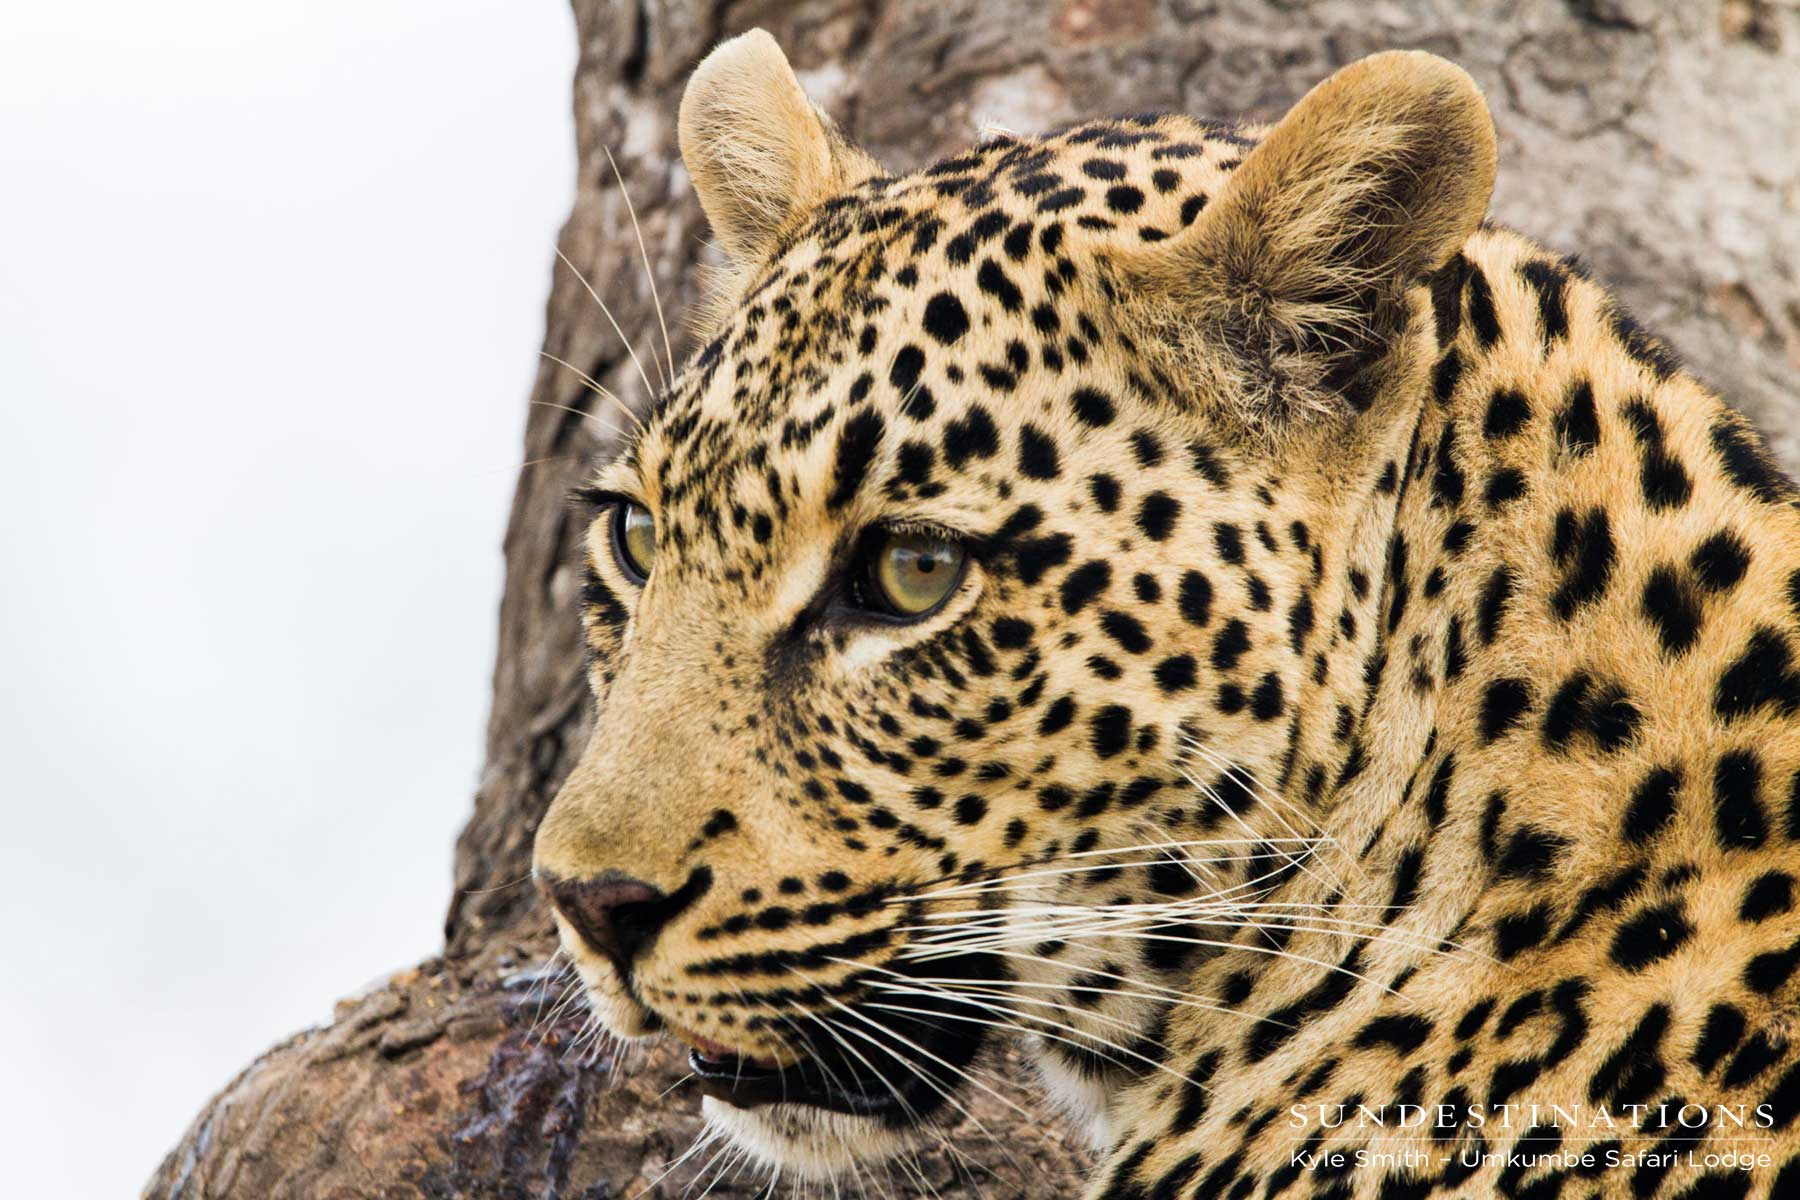 Leopard and Hyenas : A Toxic Friendship